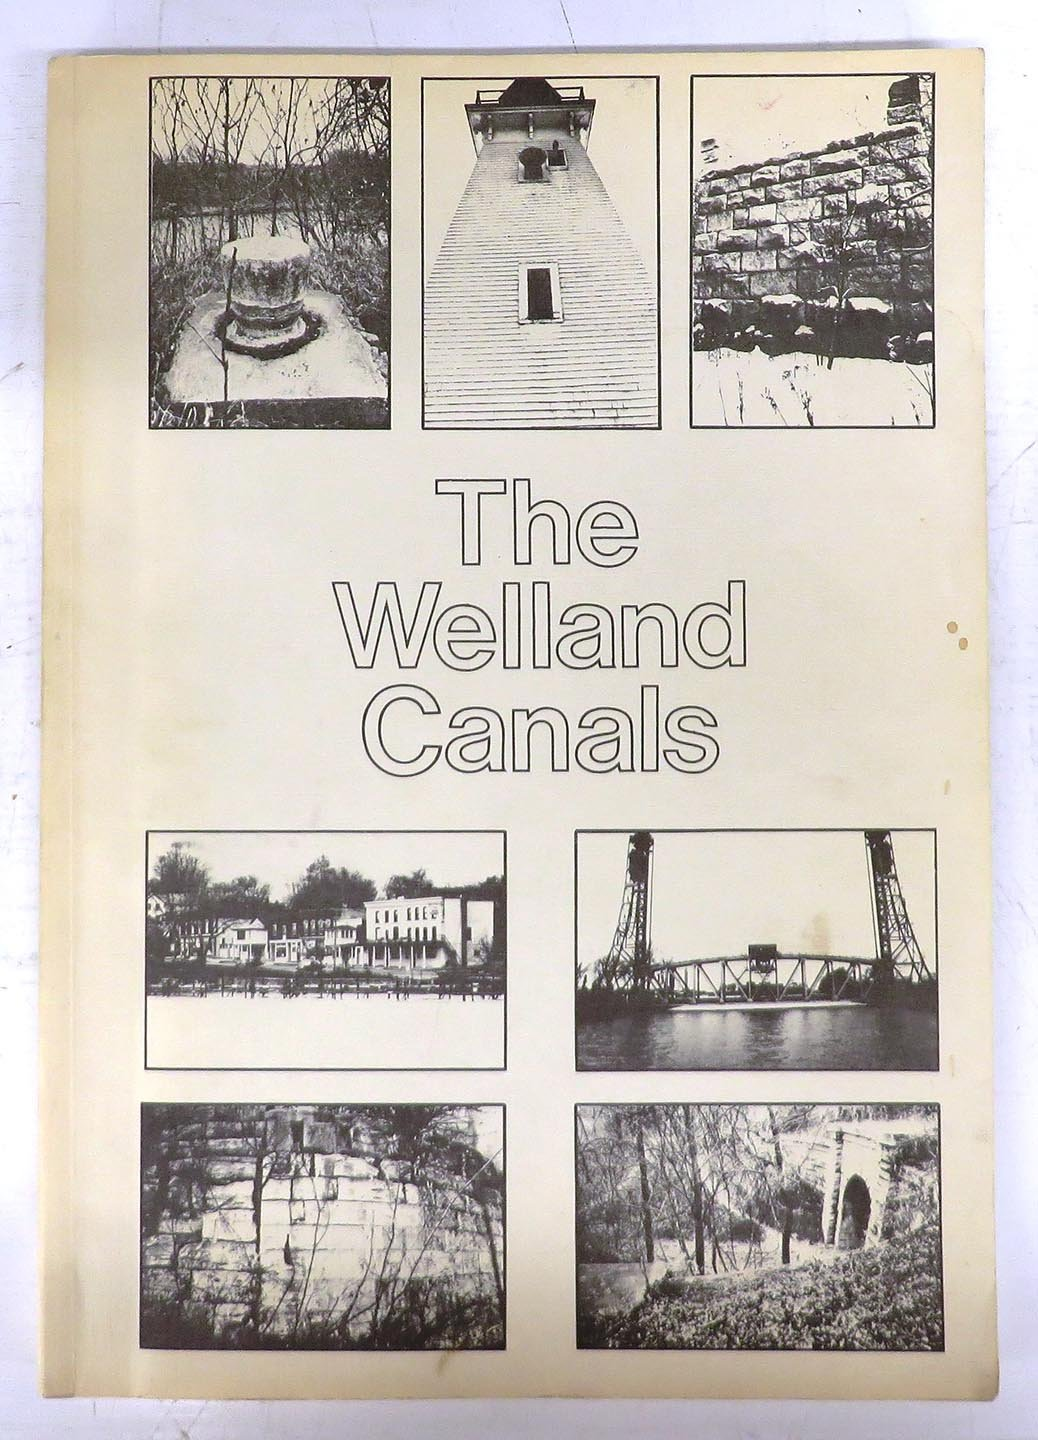 The Welland Canals: Historical Resource Analysis and Preservation Alternatives